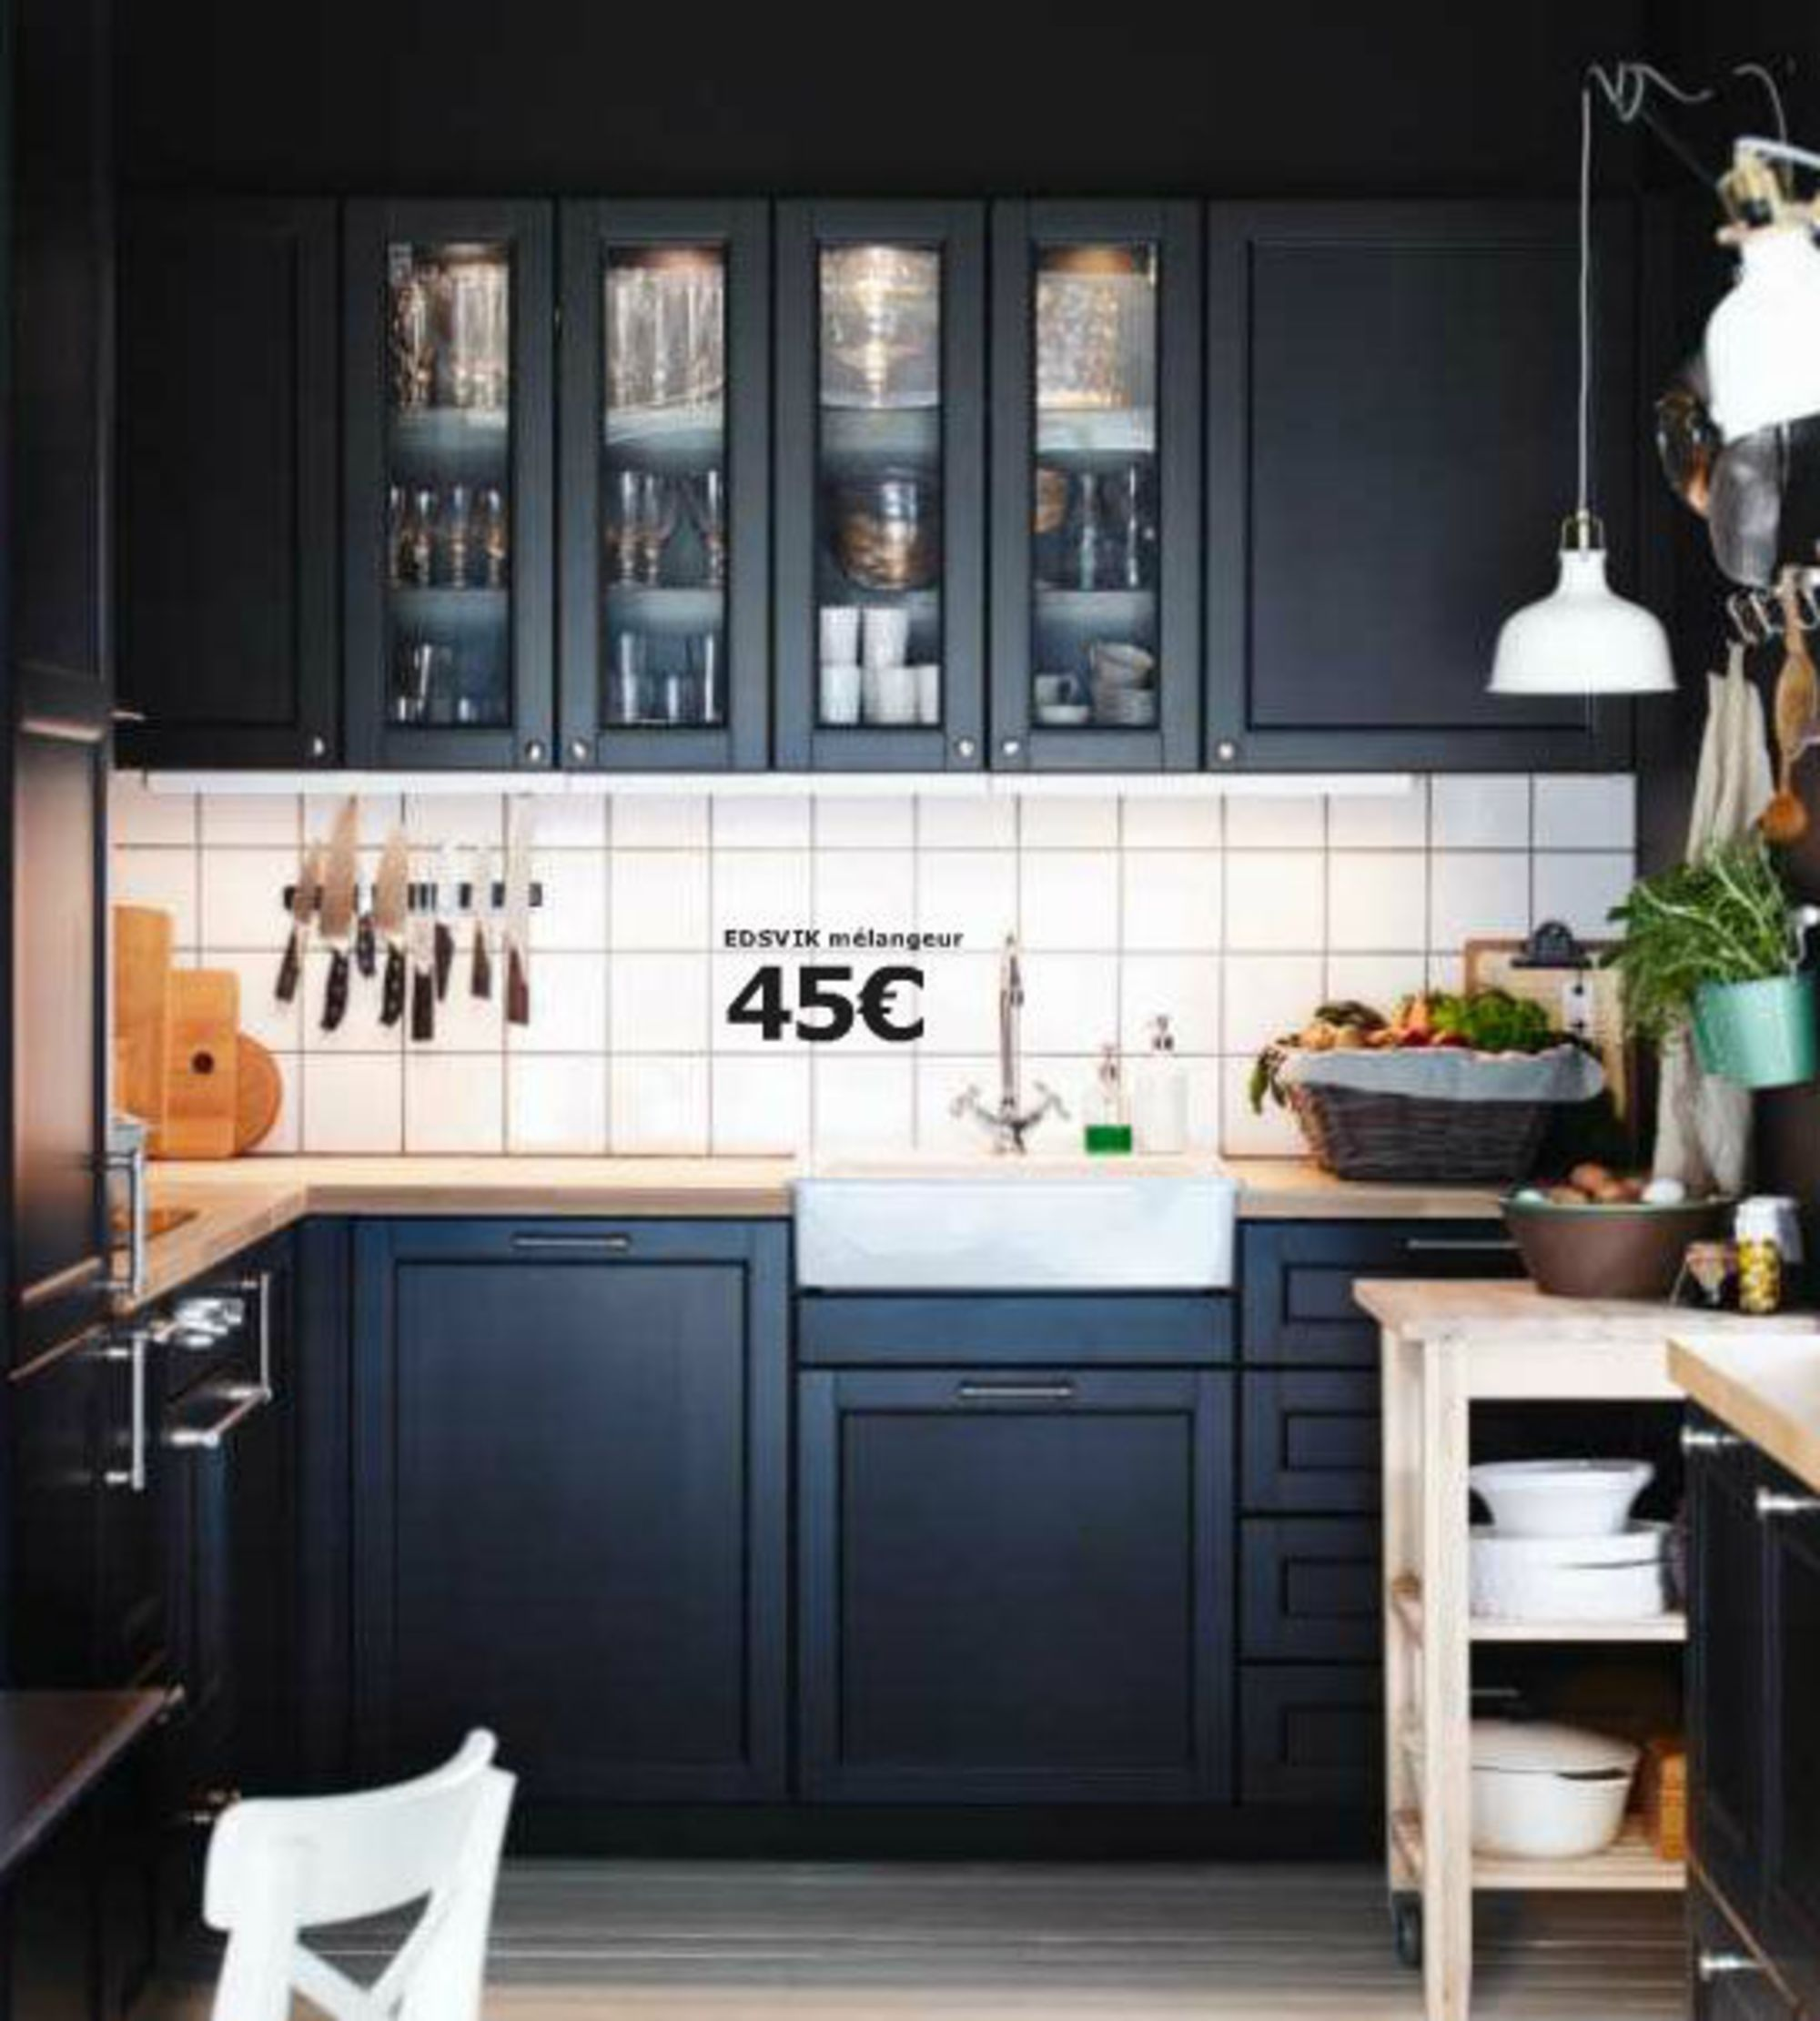 cuisine ikea consultez le catalogue cuisine ikea kitchen inspiration pinterest m langeur. Black Bedroom Furniture Sets. Home Design Ideas